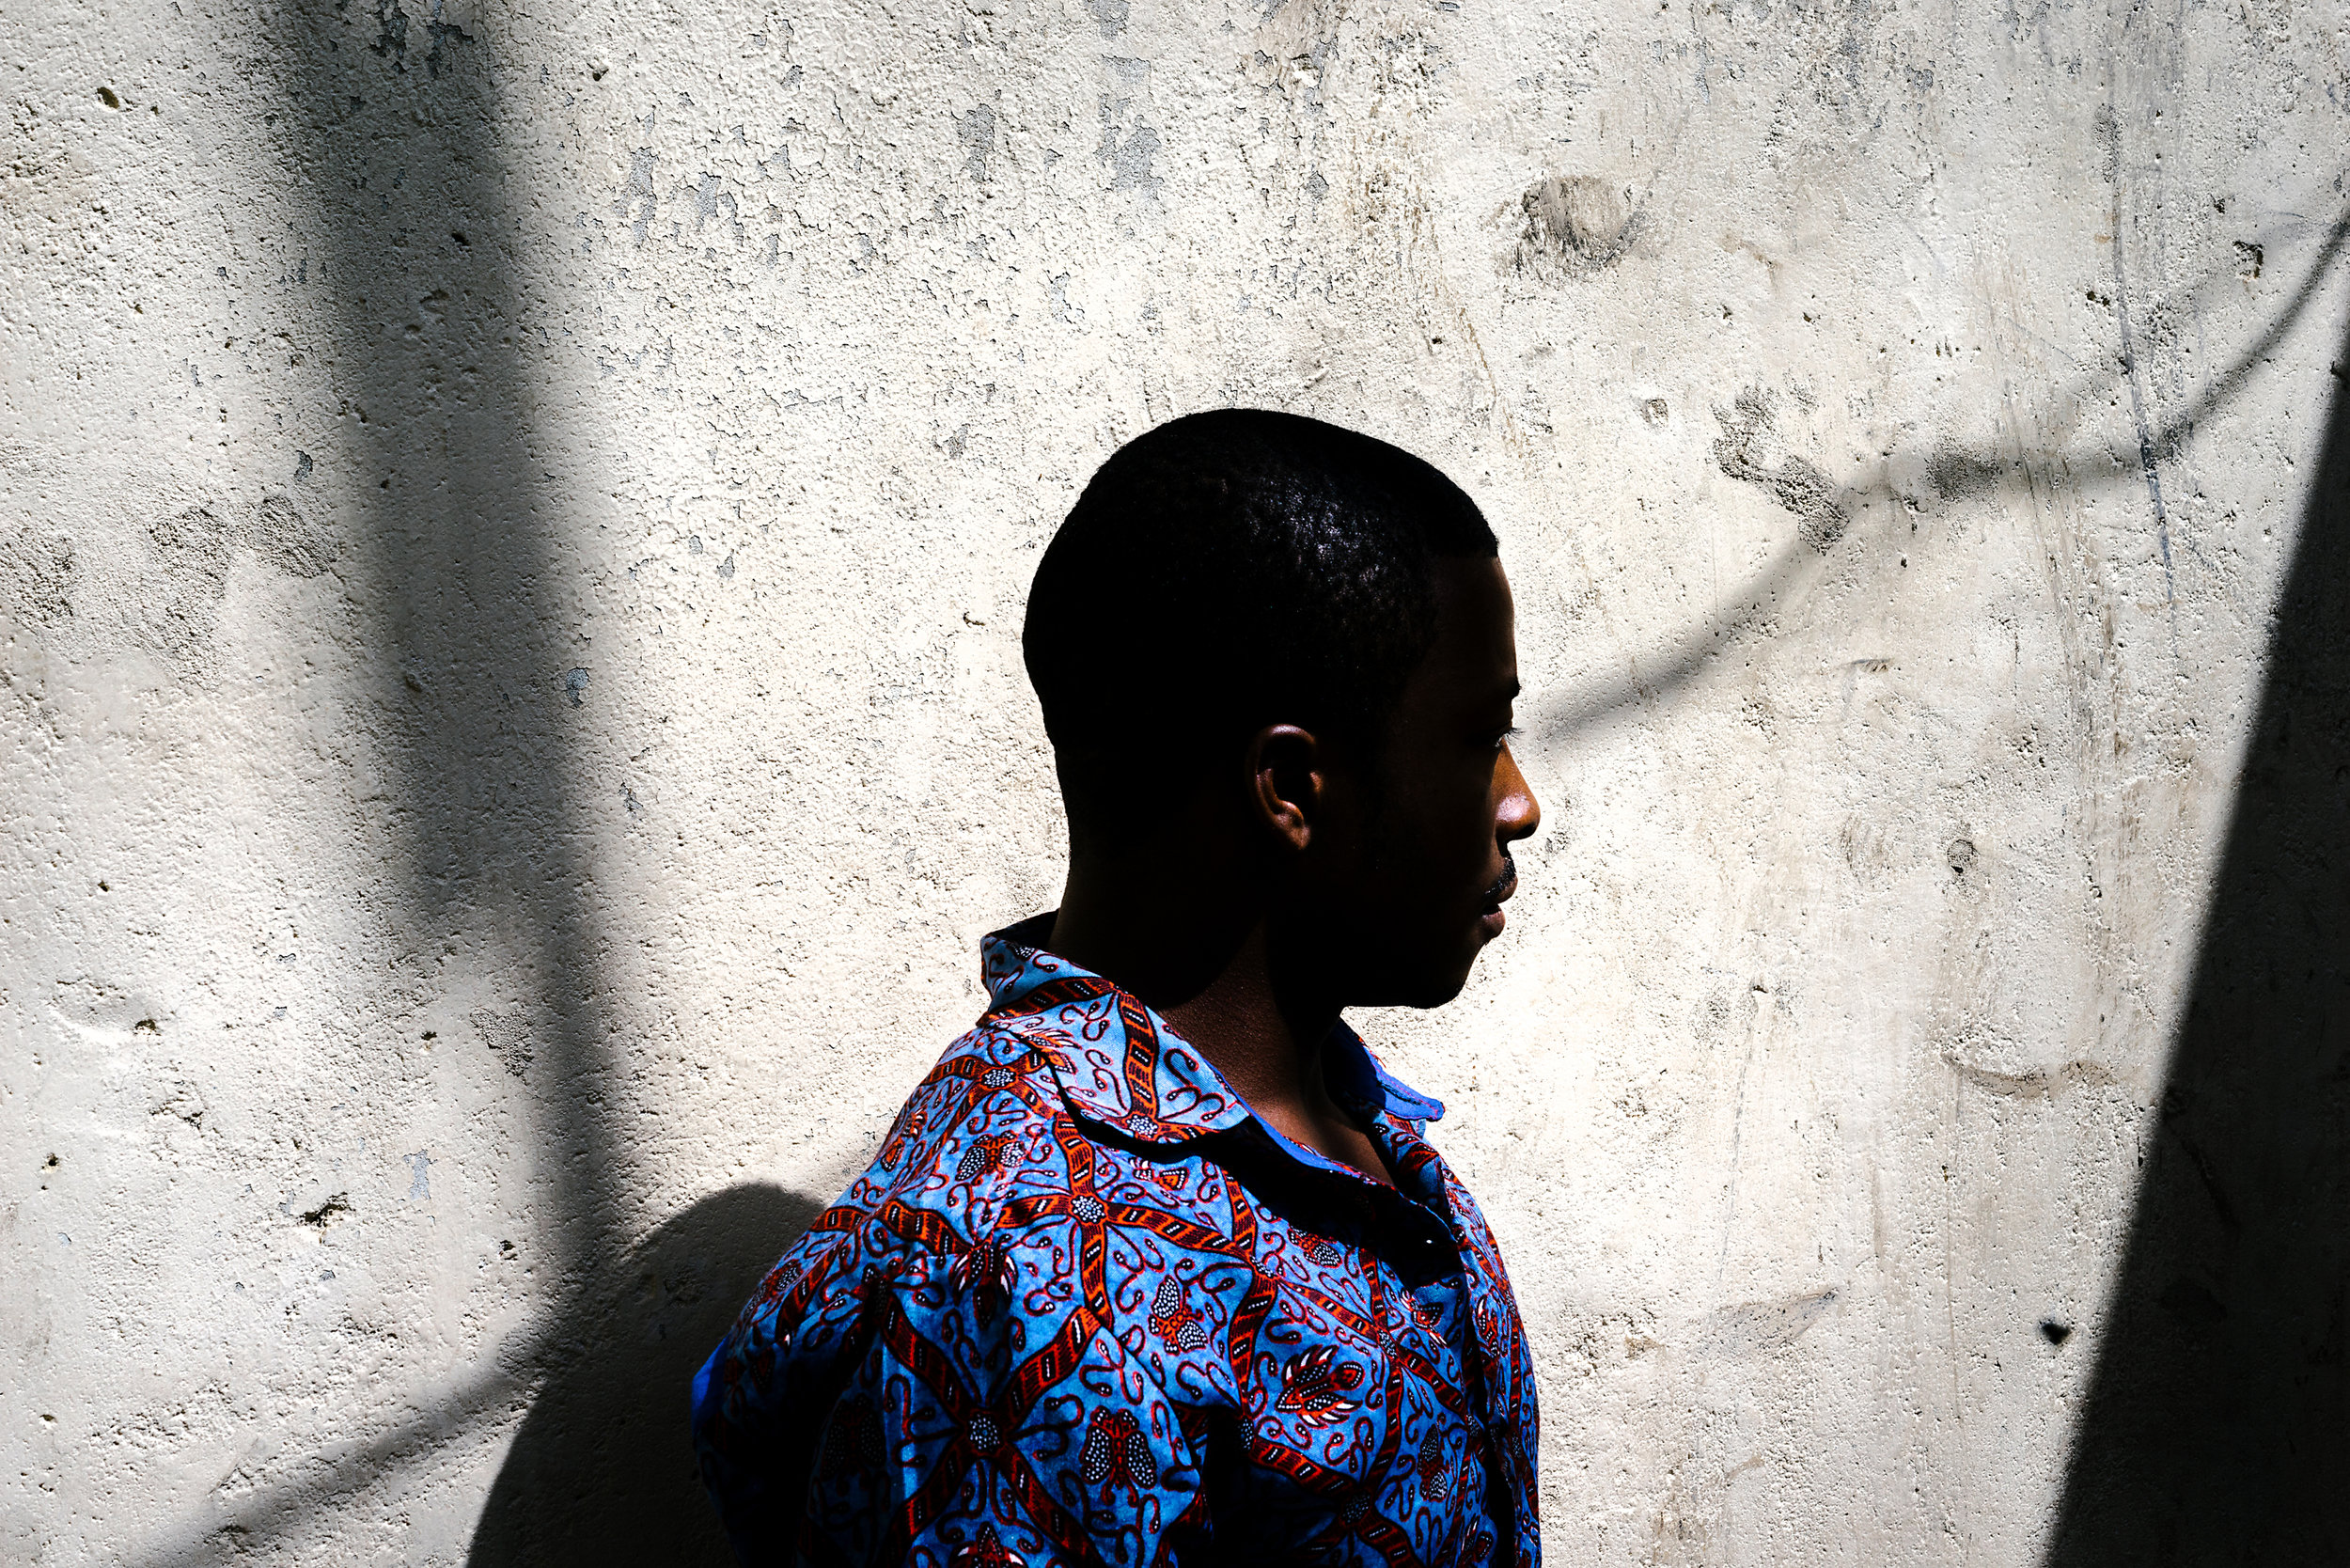 A gay refugee from the Democratic Republic of the Congo poses for a portrait near his home in Nairobi. He was kicked out of his previous apartment by his landlord and beaten by a band of thugs, he said. Now, he lives in hiding.